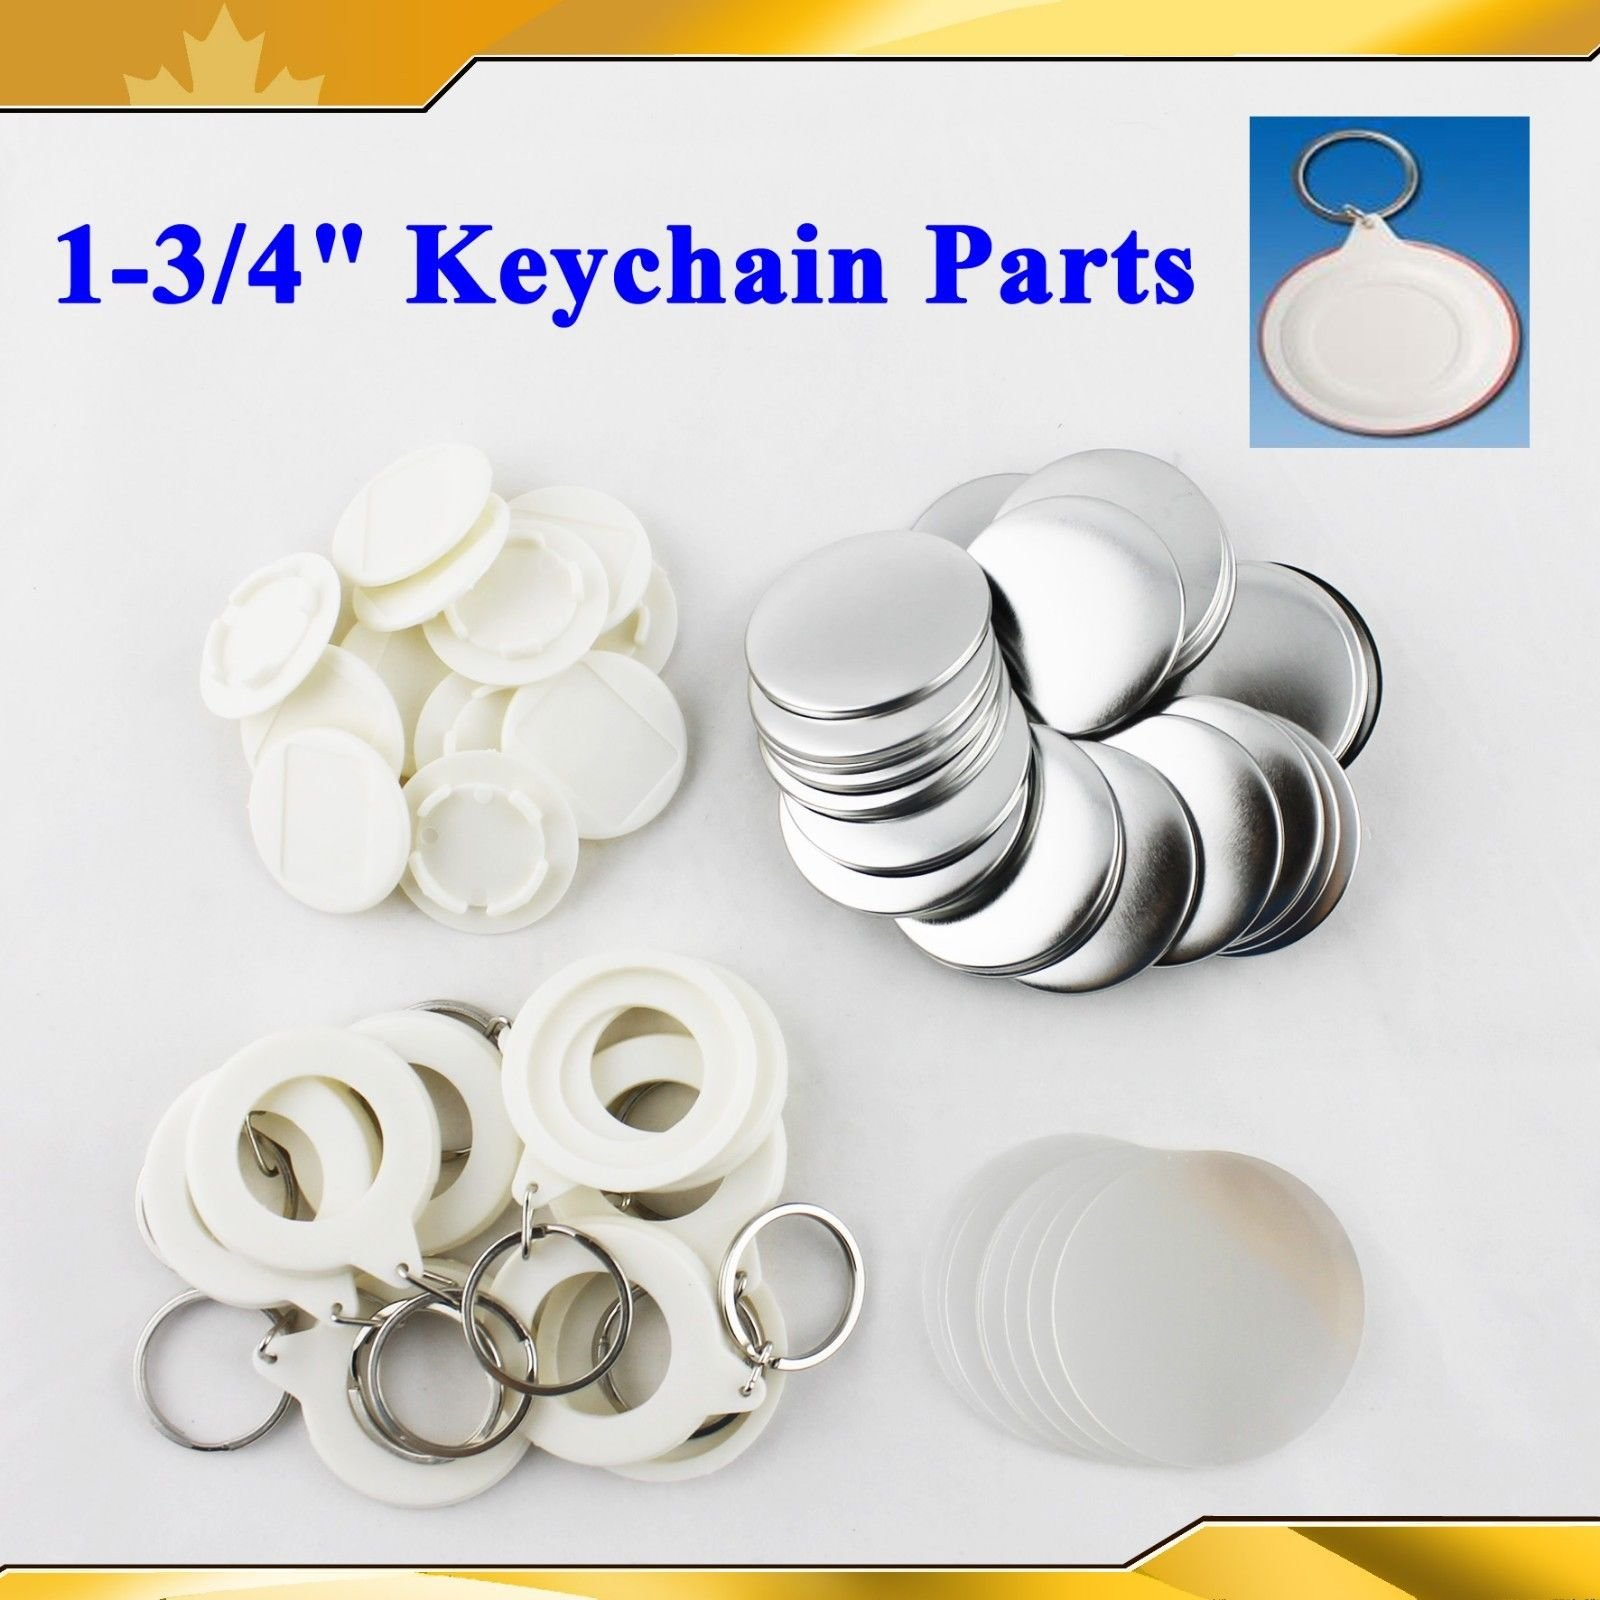 Asc365 44mm 1-3/4'' Keychain Supplies 100sets for Pro Maker Machine Commerciadiy